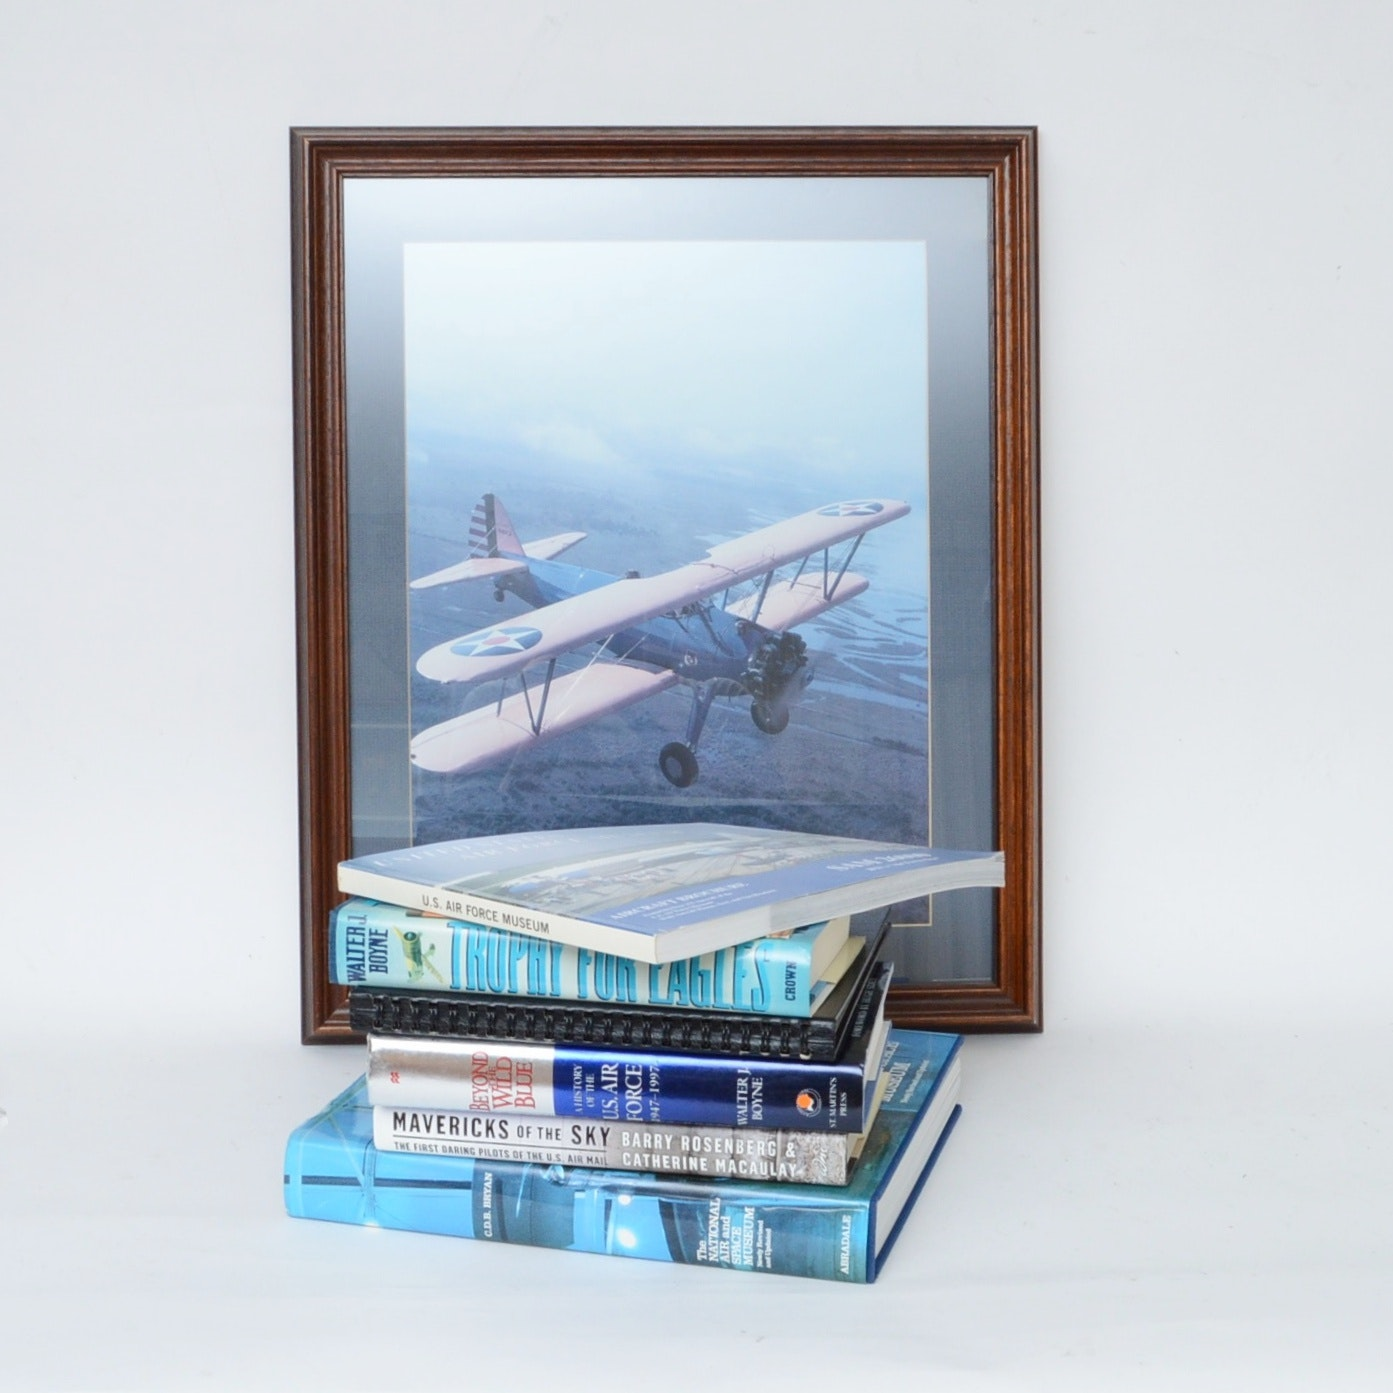 Aviation Books With Accompanying Framed Art Piece